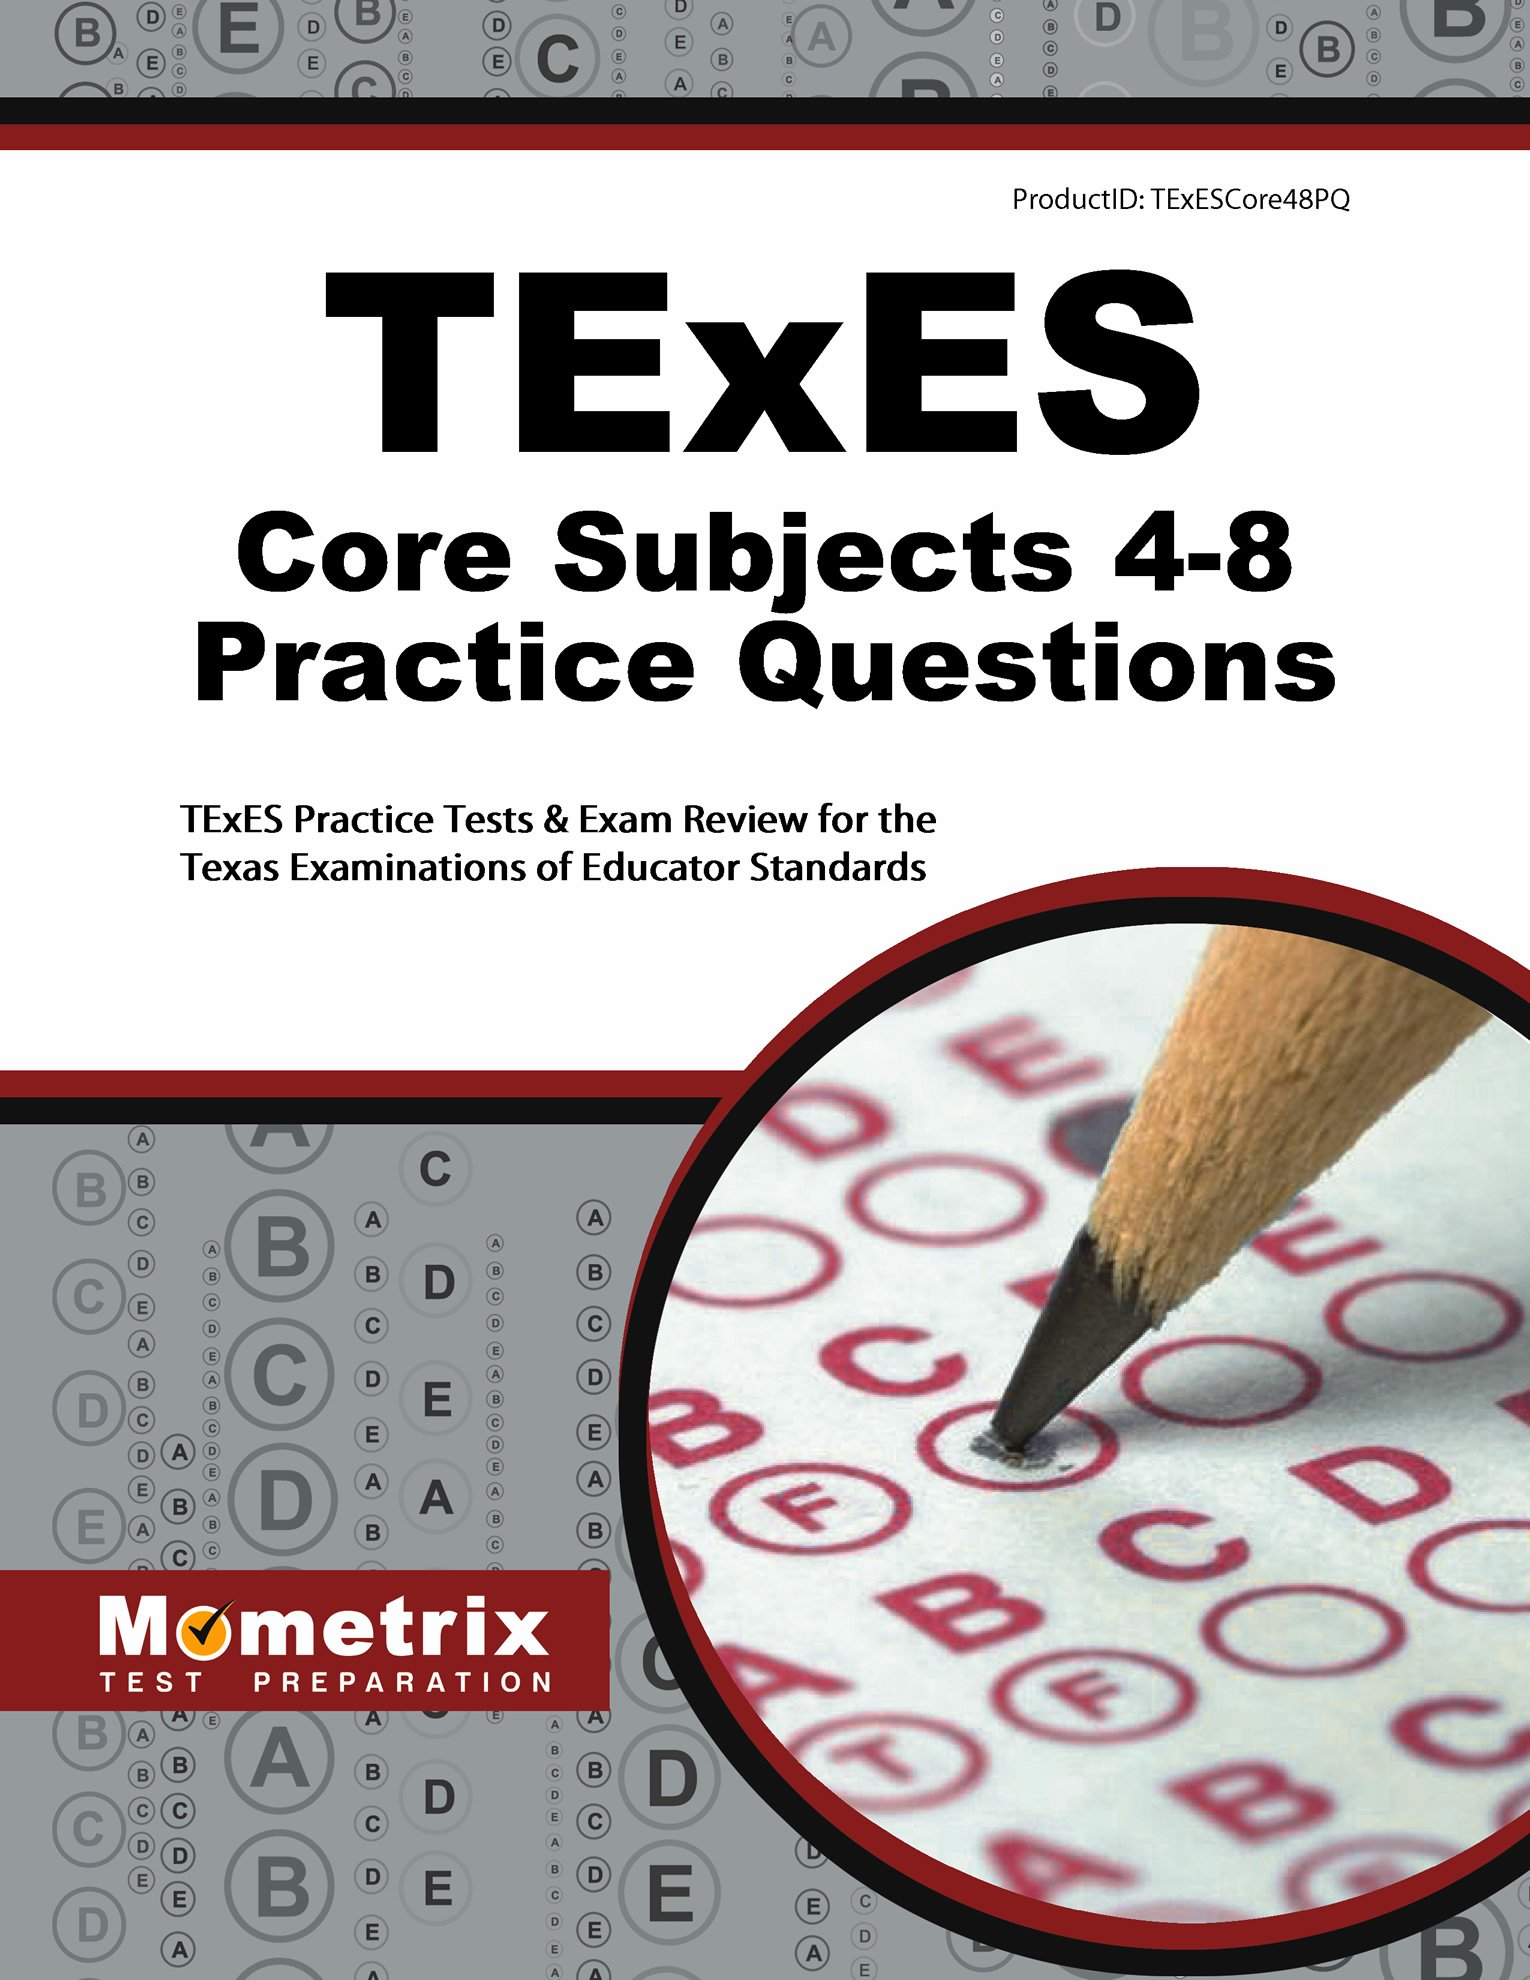 Passing the texes certification exam - Texes Core Subjects 4 8 Practice Questions Texes Practice Tests Exam Review For The Texas Examinations Of Educator Standards Texes Exam Secrets Test